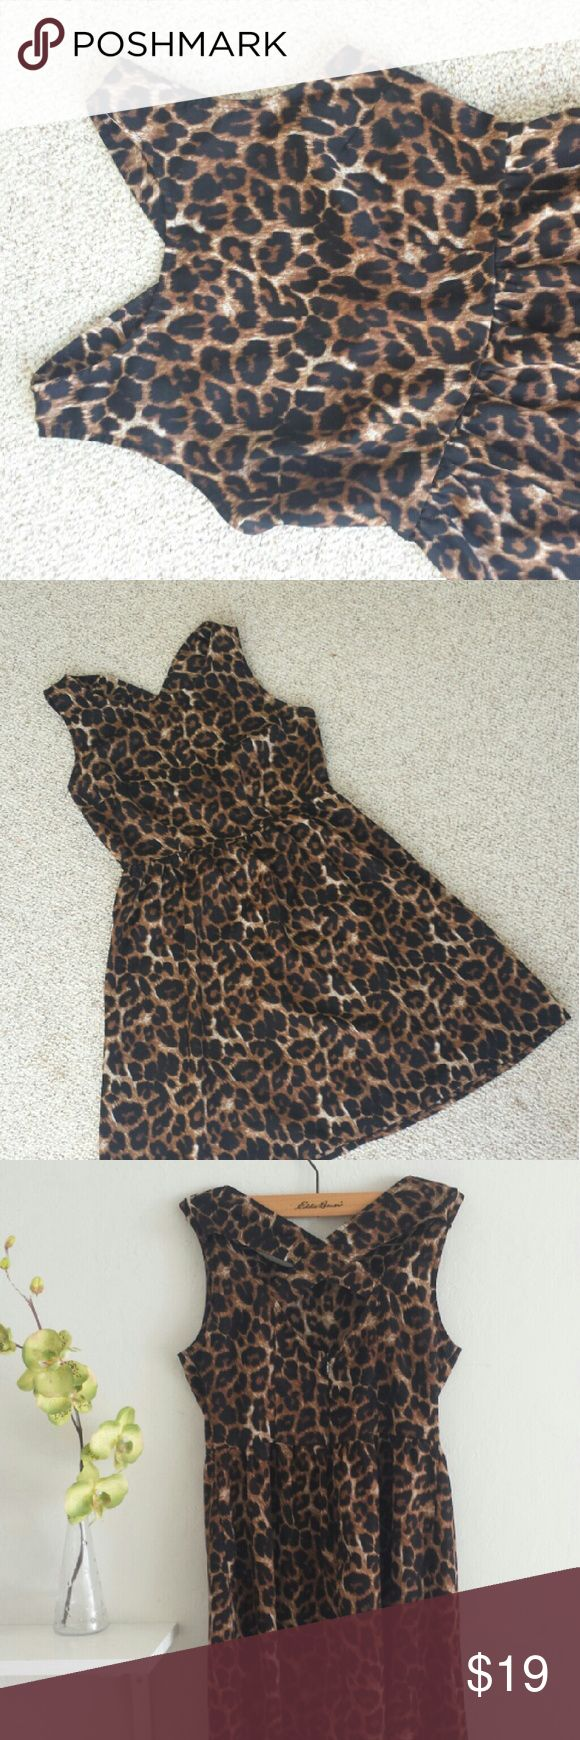 "$Flash$F21 Animal print cross back mini dress Forever 21 Animal print cross back mini dress. In excellent condition. Zipper closure on side, Crosse back for feminine look. 32 1/2"" in length. 16 1/2"" bust, 13 1/2"" waist no elastic band. Size S Forever 21 Dresses Mini"